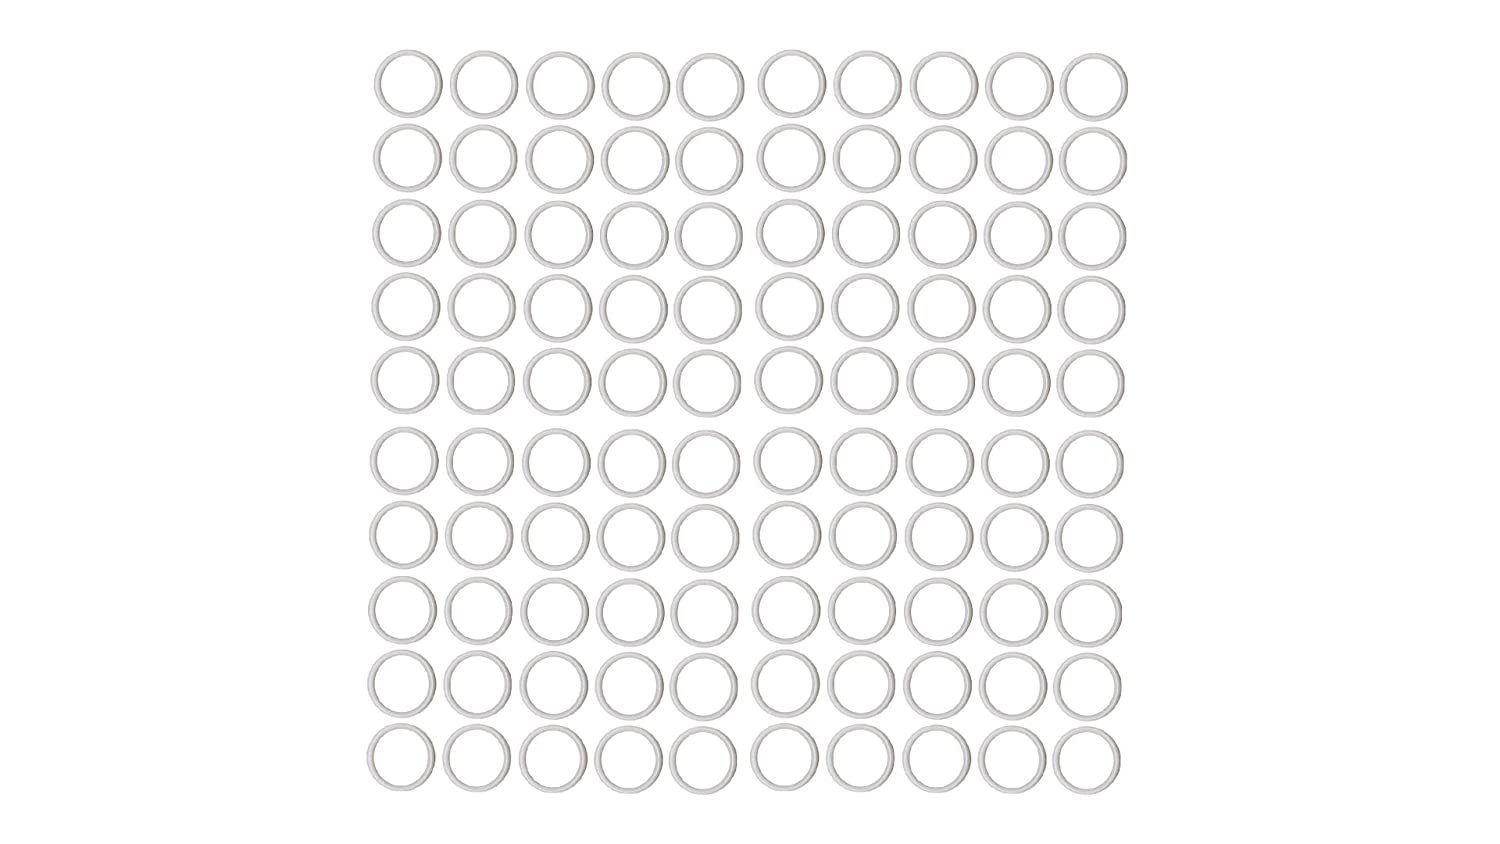 Pack of 100 1-1//2 OD 1-1//8 ID 1-1//2 OD Outstanding Weather Resistance Sterling Seal ORTFE320x100 Number-320 Standard Teflon O-Ring Sur-Seal Polytetrafluoro-Ethylene 1-1//8 ID Pack of 100